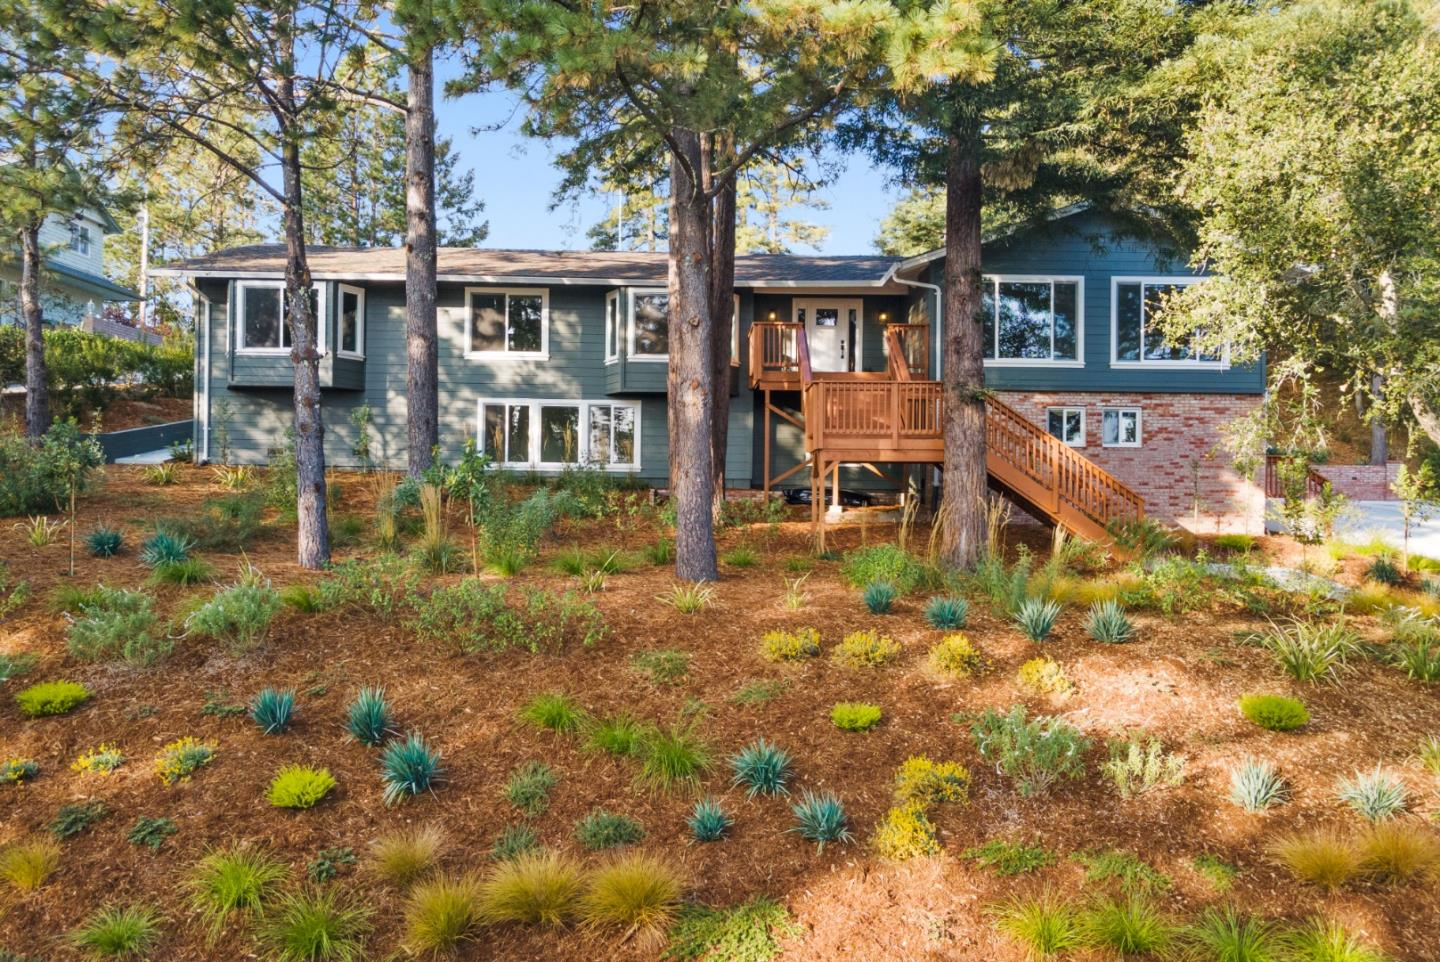 Modern & elegant executive style home in the sought after Hidden Glen neighborhood of Scotts Valley. This stunning 4BR/3BA home with high ceilings & large windows throughout has been transformed in a top to bottom remodel. The kitchen is truly grand, featuring quartz countertops, a huge center island, gas cooktop, double oven, 2 temperature zone double wine, & beverage refrigerator & custom cabinetry. The adjacent dining area has a gas fireplace & sliding doors opening onto the sunny deck & terraced yard. A spacious master bedroom suite features an en-suite bathroom and walk-in closet. The lower level has guest unit potential, with a private entry, full bathroom, & plumbing for a kitchenette. Recent upgrades include new roof, siding, windows, doors, decks, landscaping, irrigation, furnace & water heater. The neighborhood amenities include a pool, tennis courts, playground, picnic tables, horse stables & riding trails. Close to sought after Scotts Valley Schools, local beaches & parks.